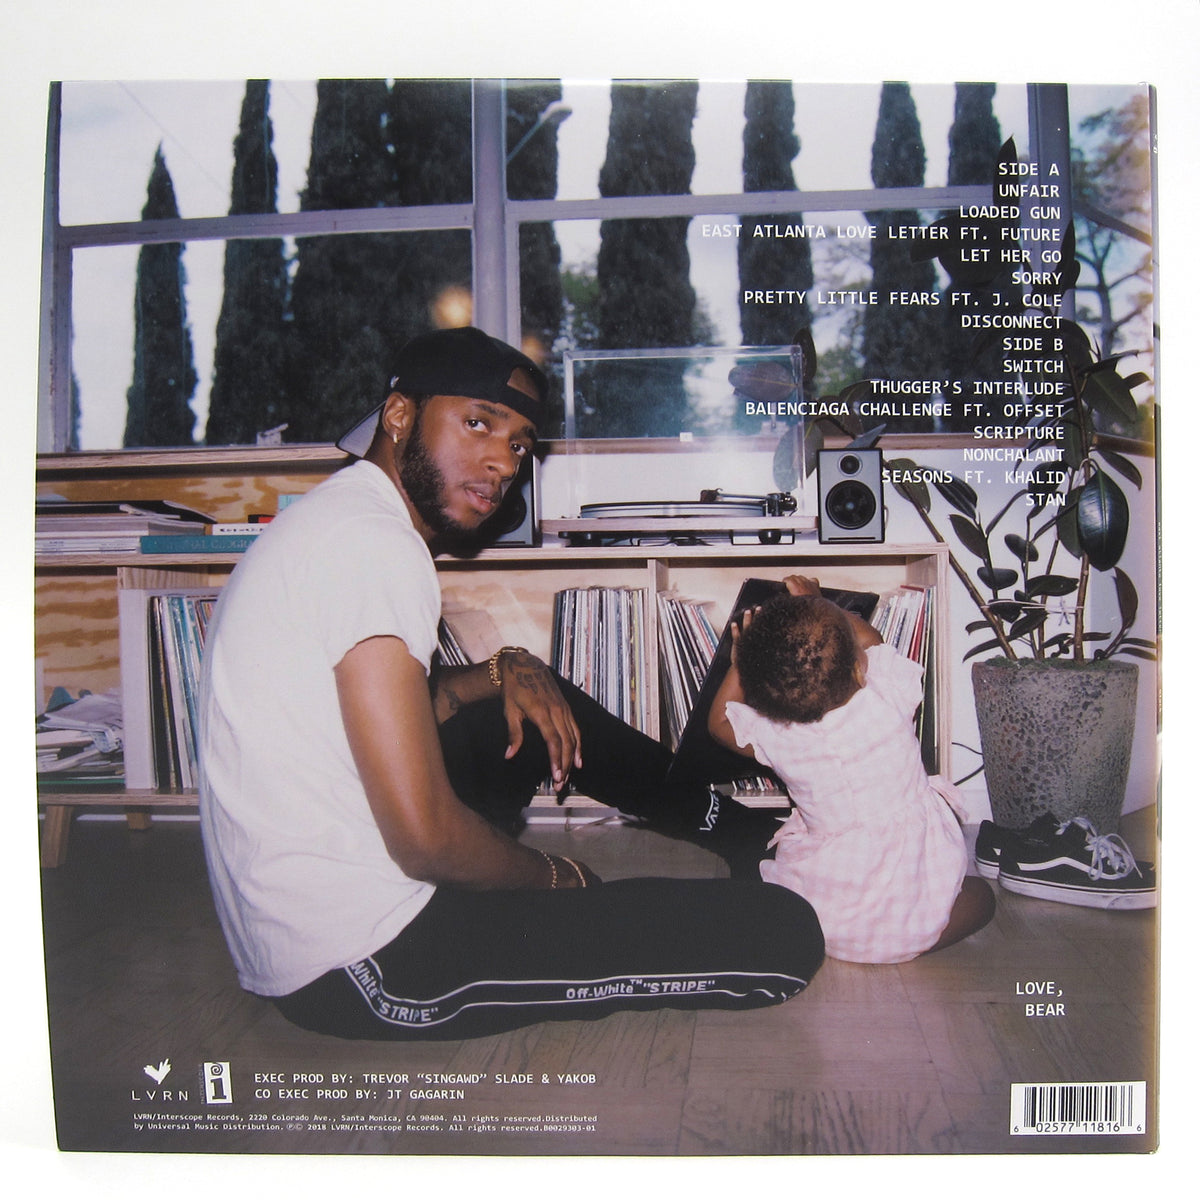 6lack: East Atlanta Love Letter Vinyl LP